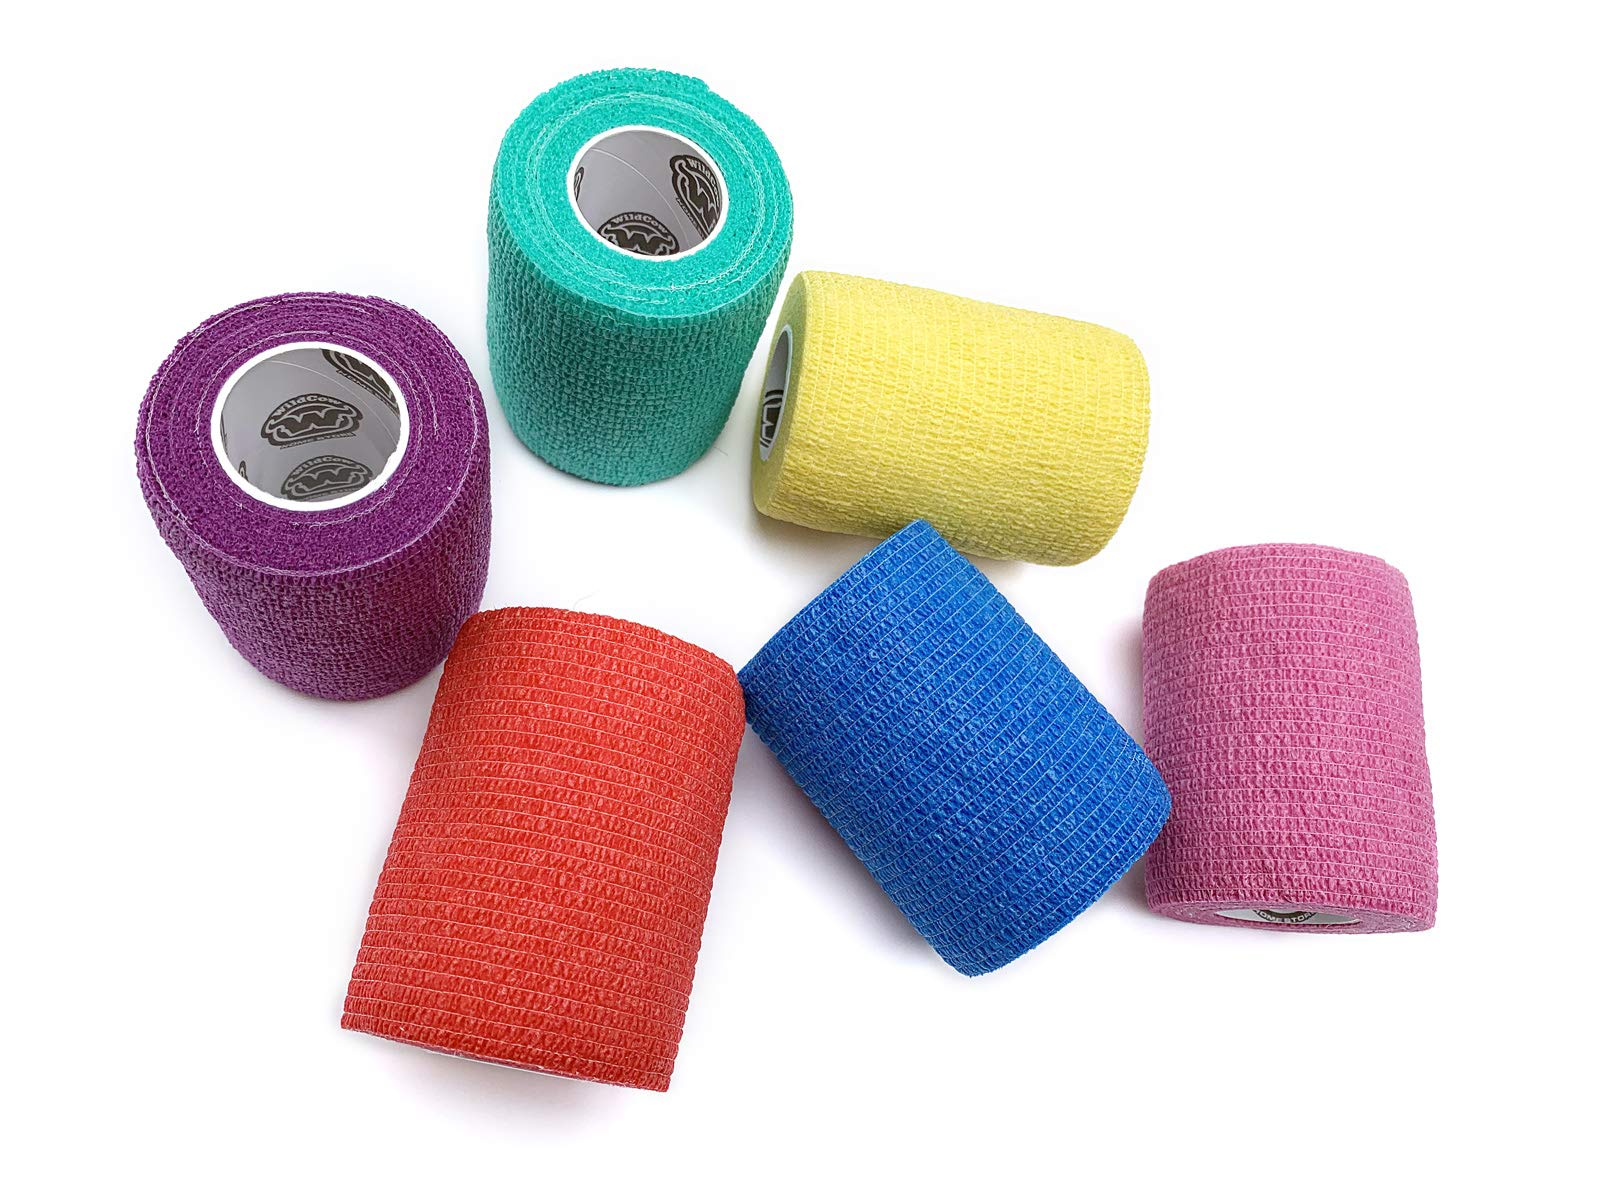 WildCow 3 Inch Vet Tape Wrap Bulk Bandages Colored (Pack of 6) ... by WildCow